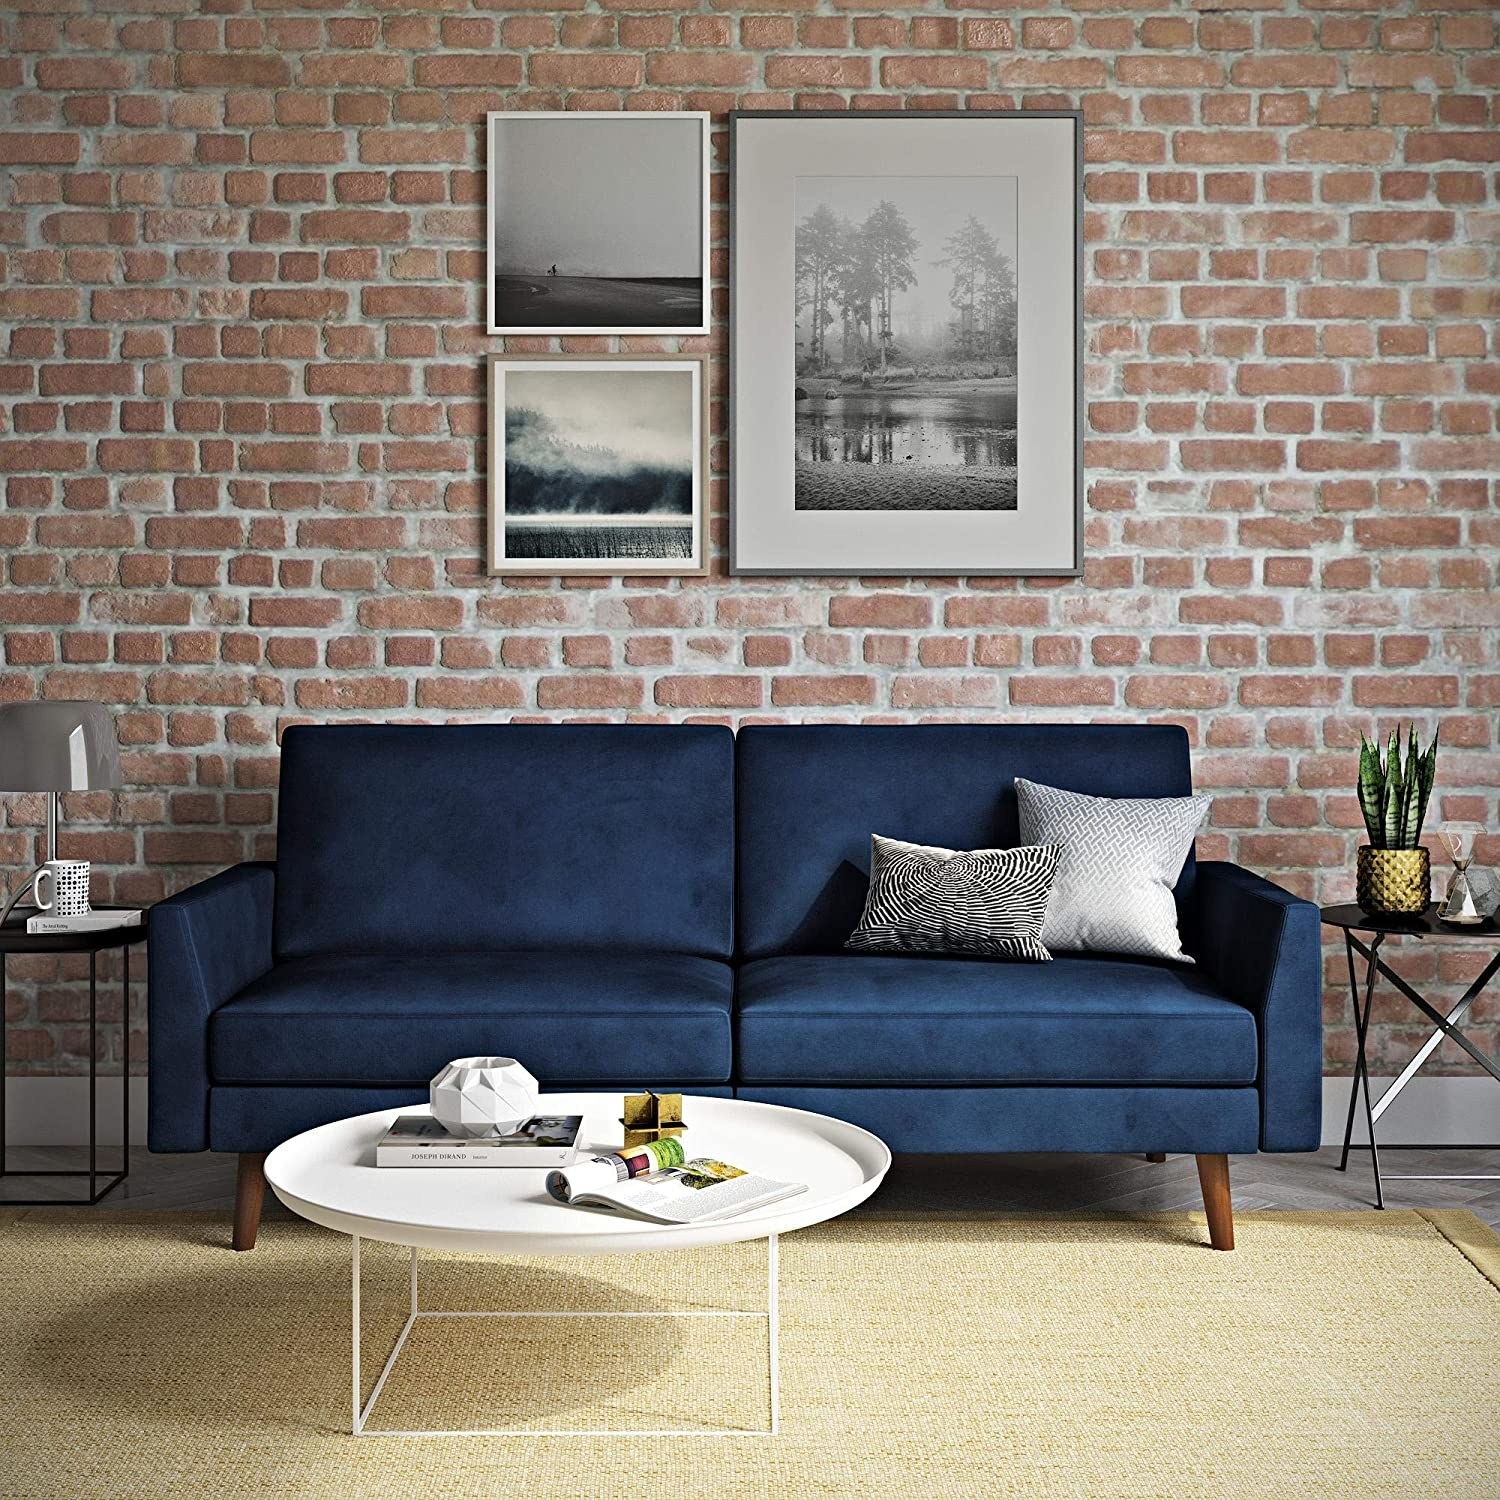 navy velvet futon that looks like a mid-century couch with wood legs